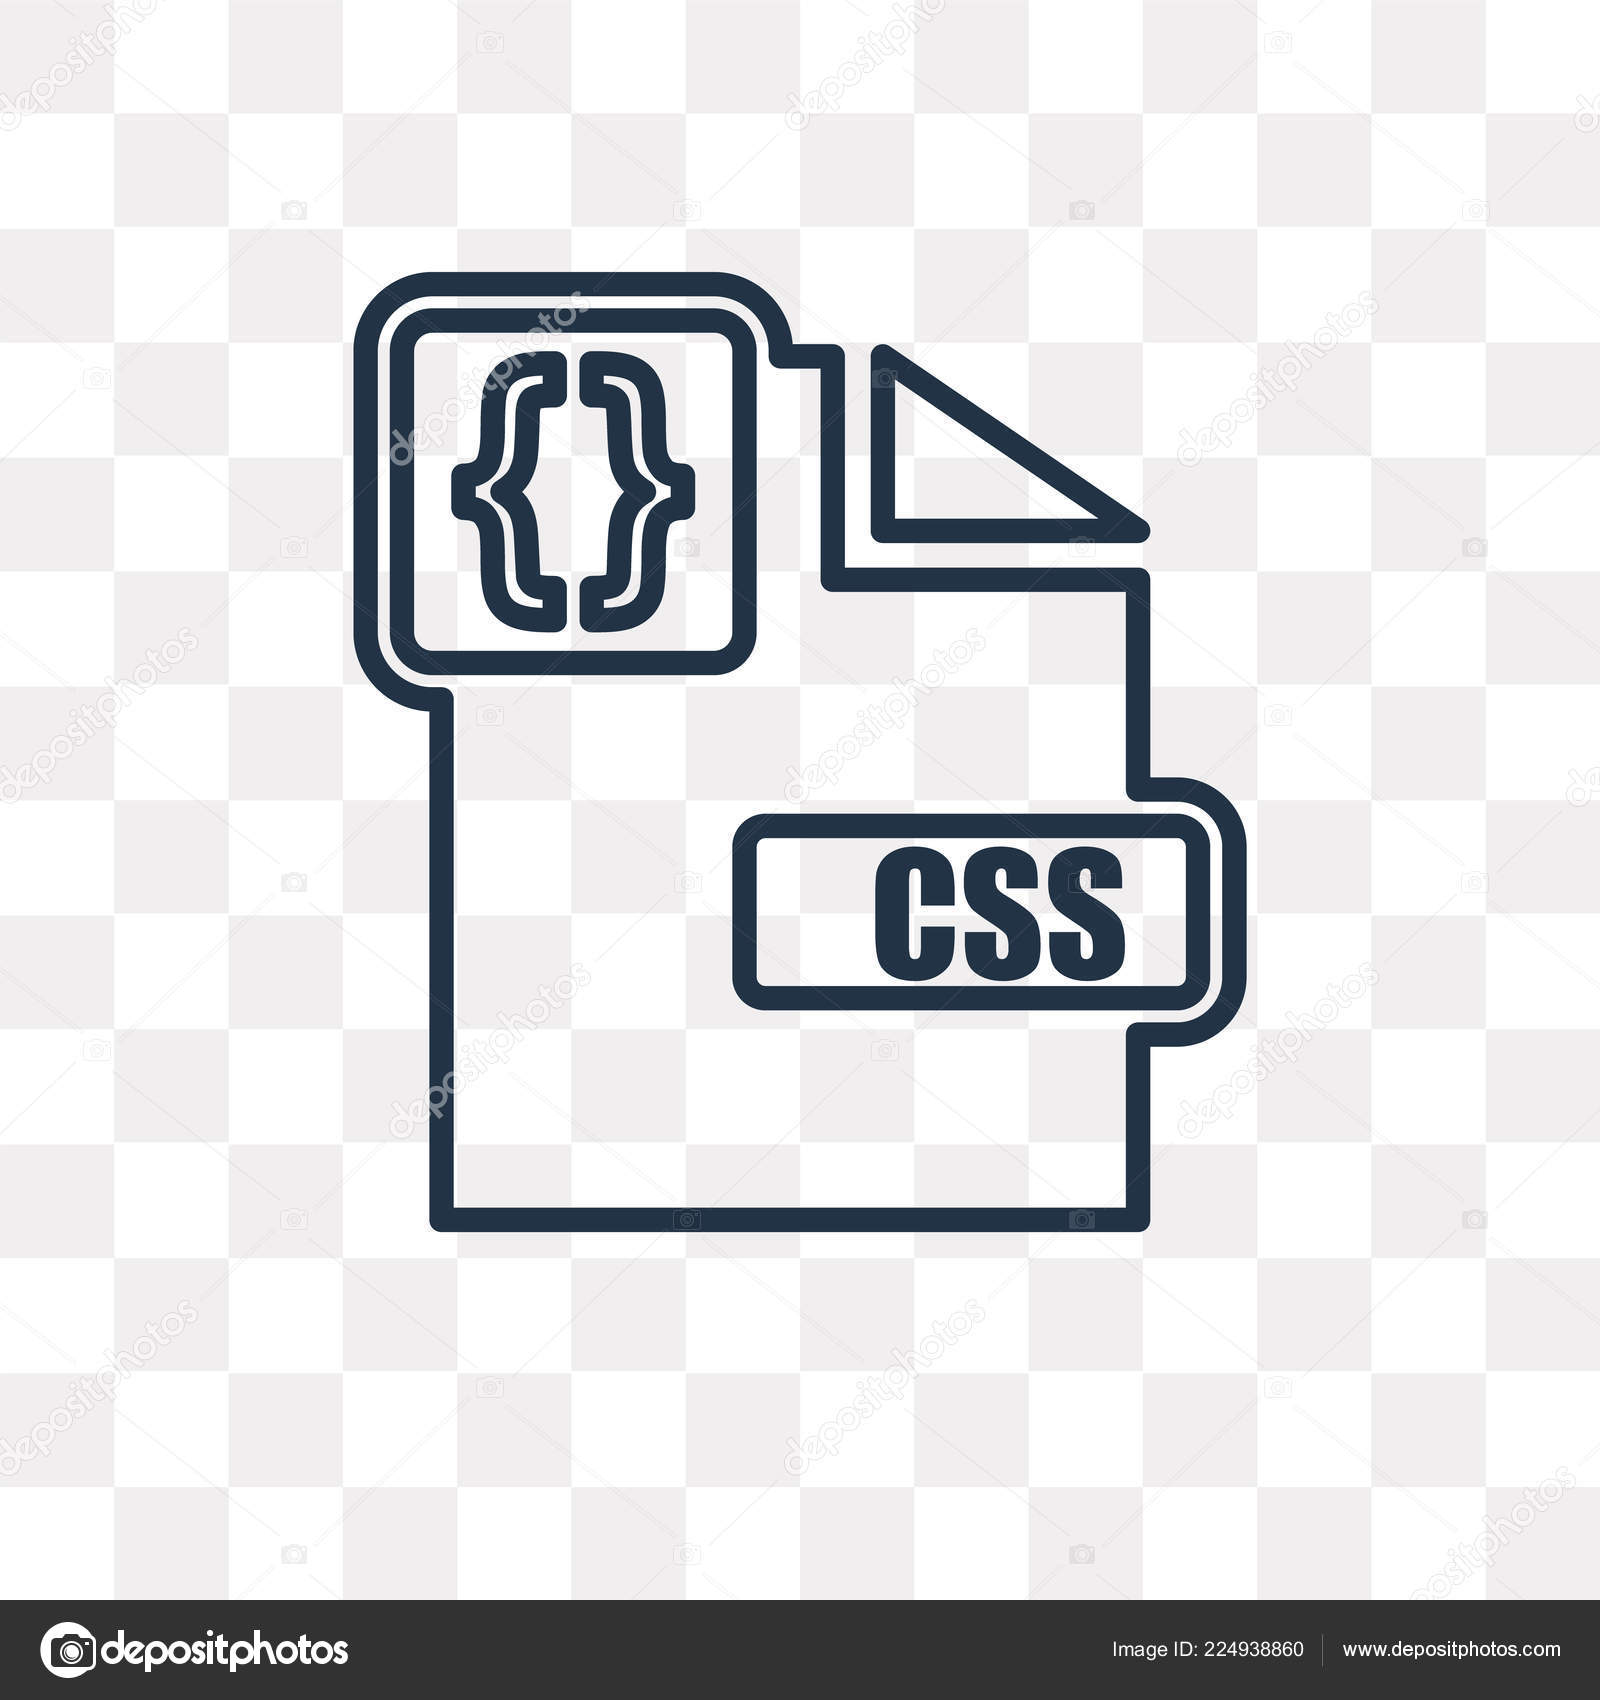 Css Vector Outline Icon Isolated Transparent Background High Quality